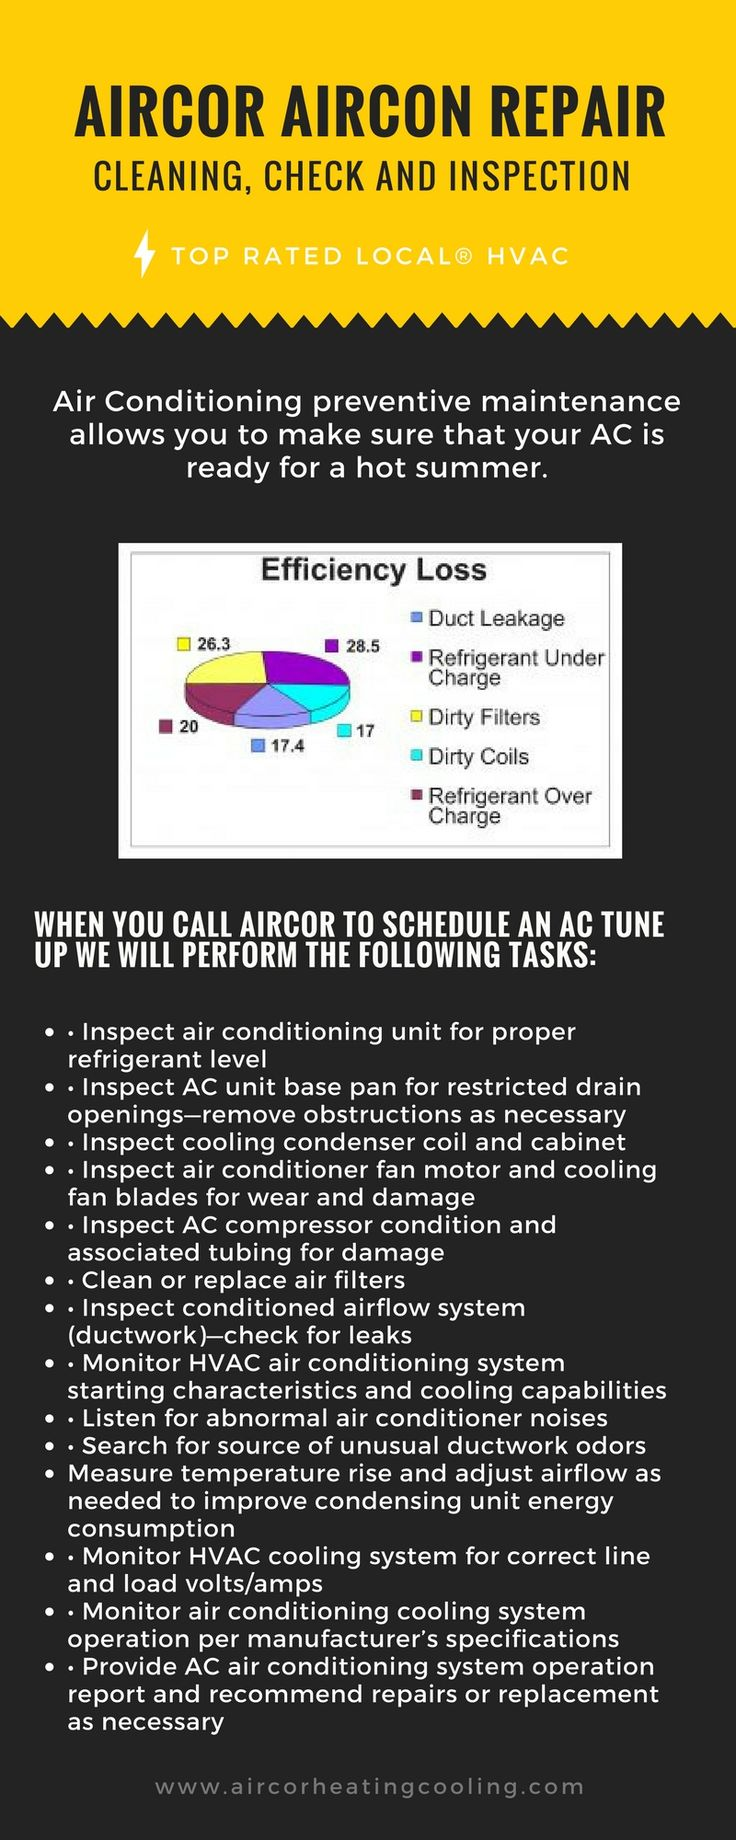 Aircor air conditioning services wants you to enjoy the comfort and peace of mind of breathing clean air all the time aircor provides cleaning check and